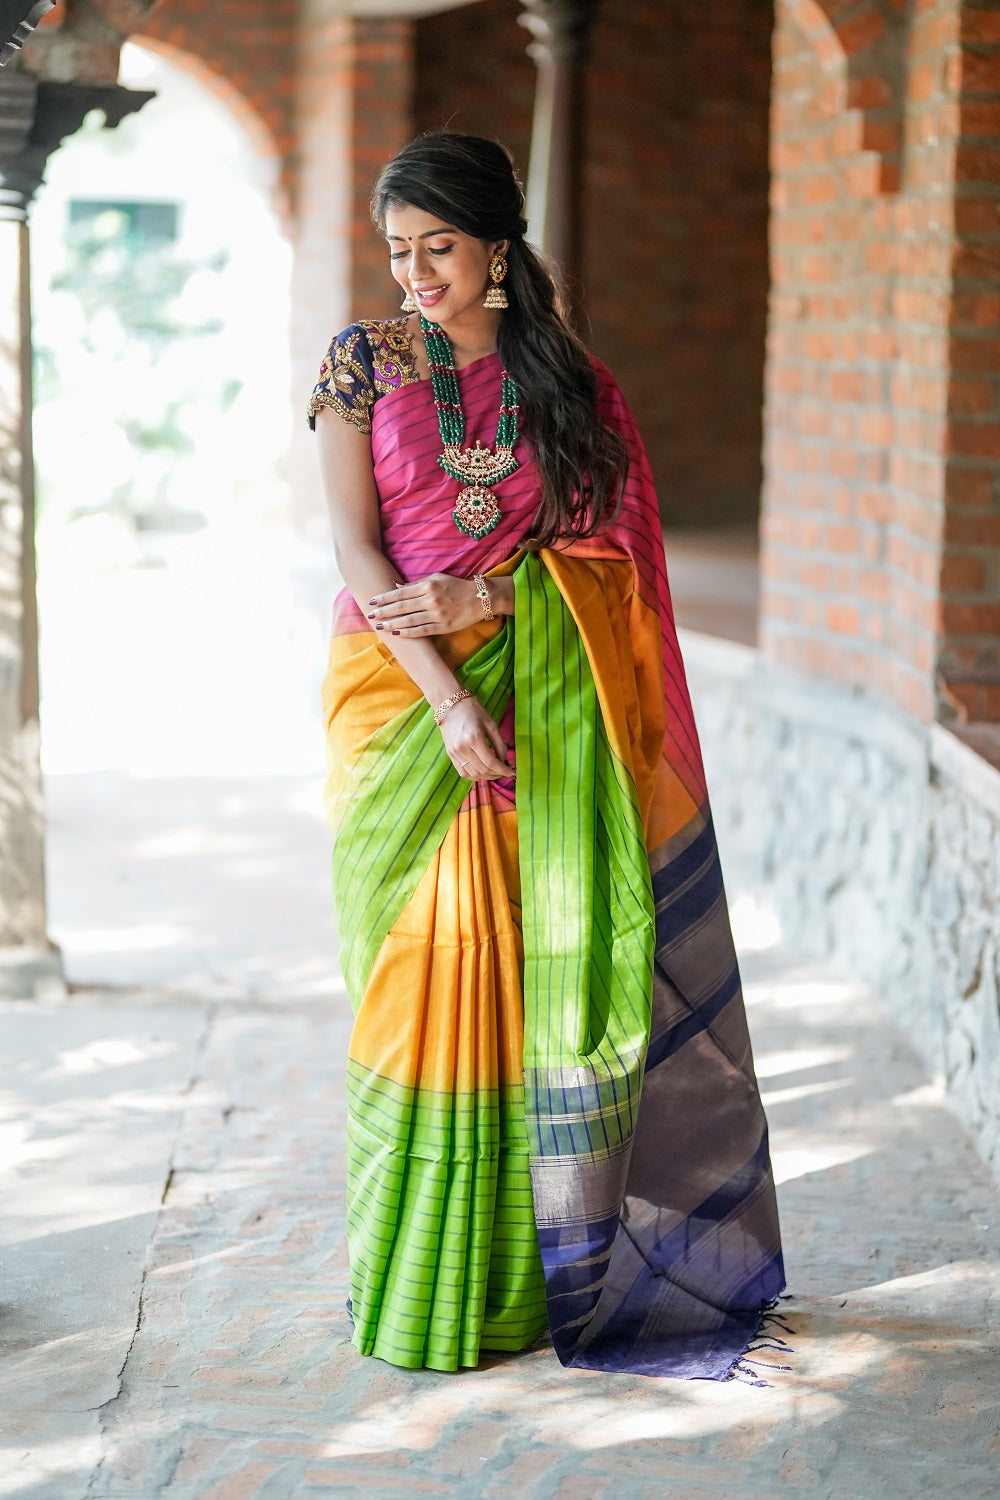 d3c536dfad1378 Rose, Yellow and Green Striped Saree With Navy Blue Pallu